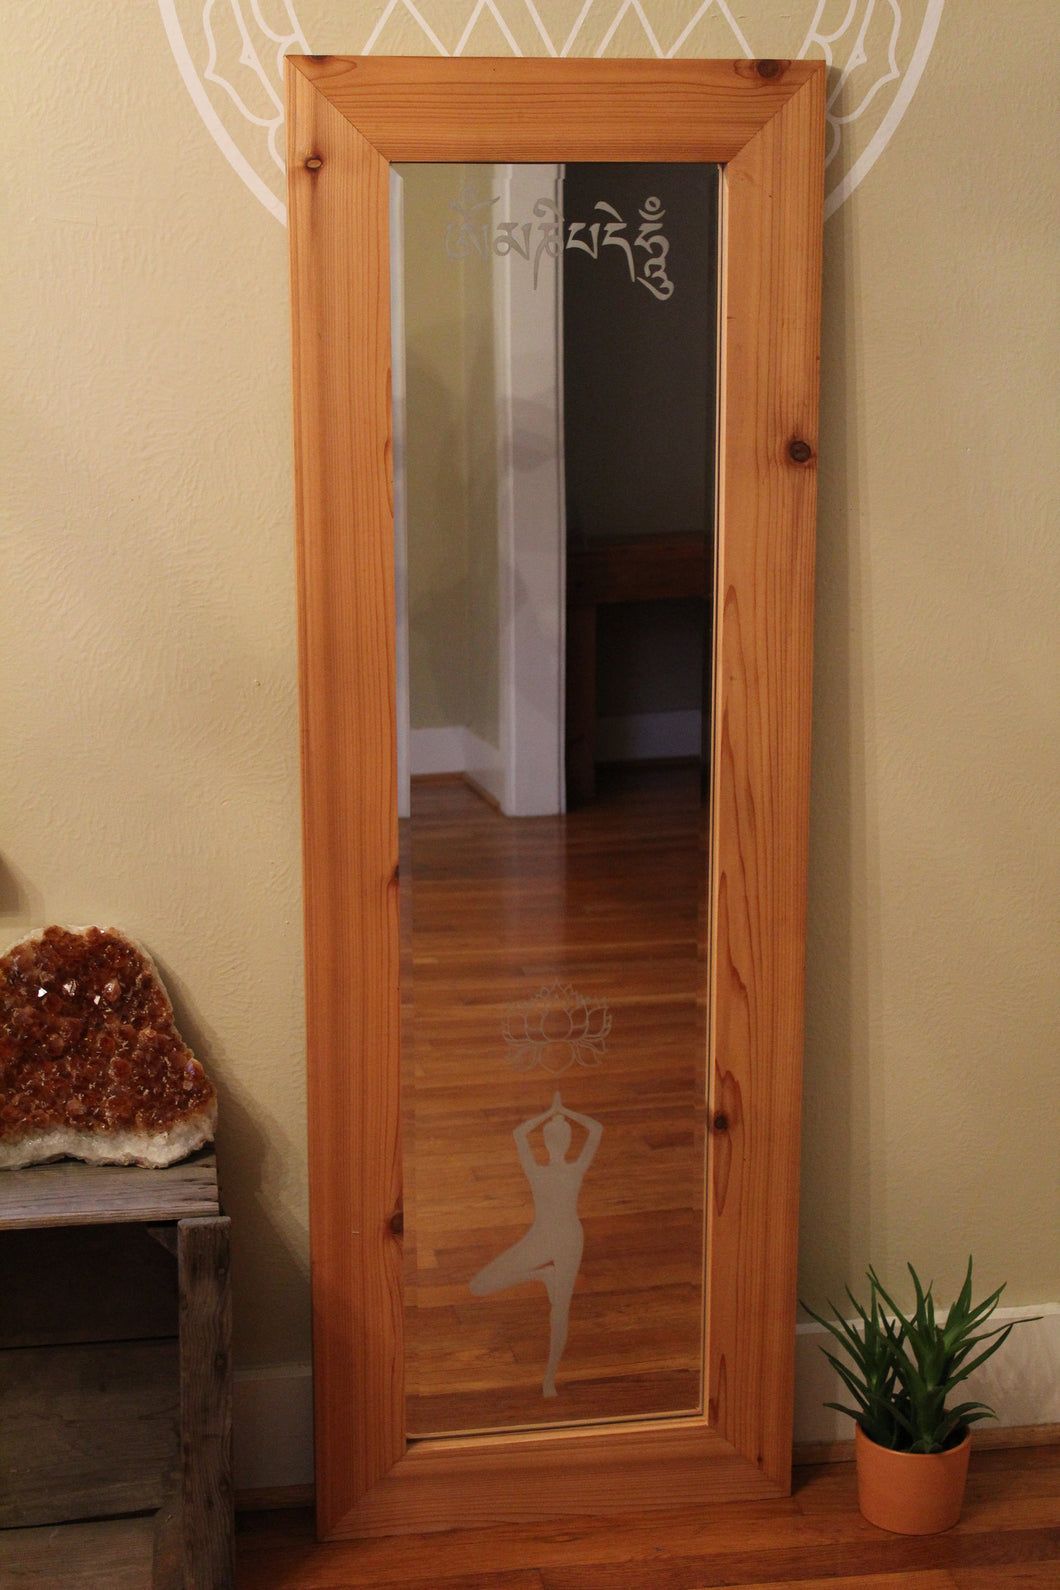 Full Length Etched Mirror with Mantra and Yoga Image